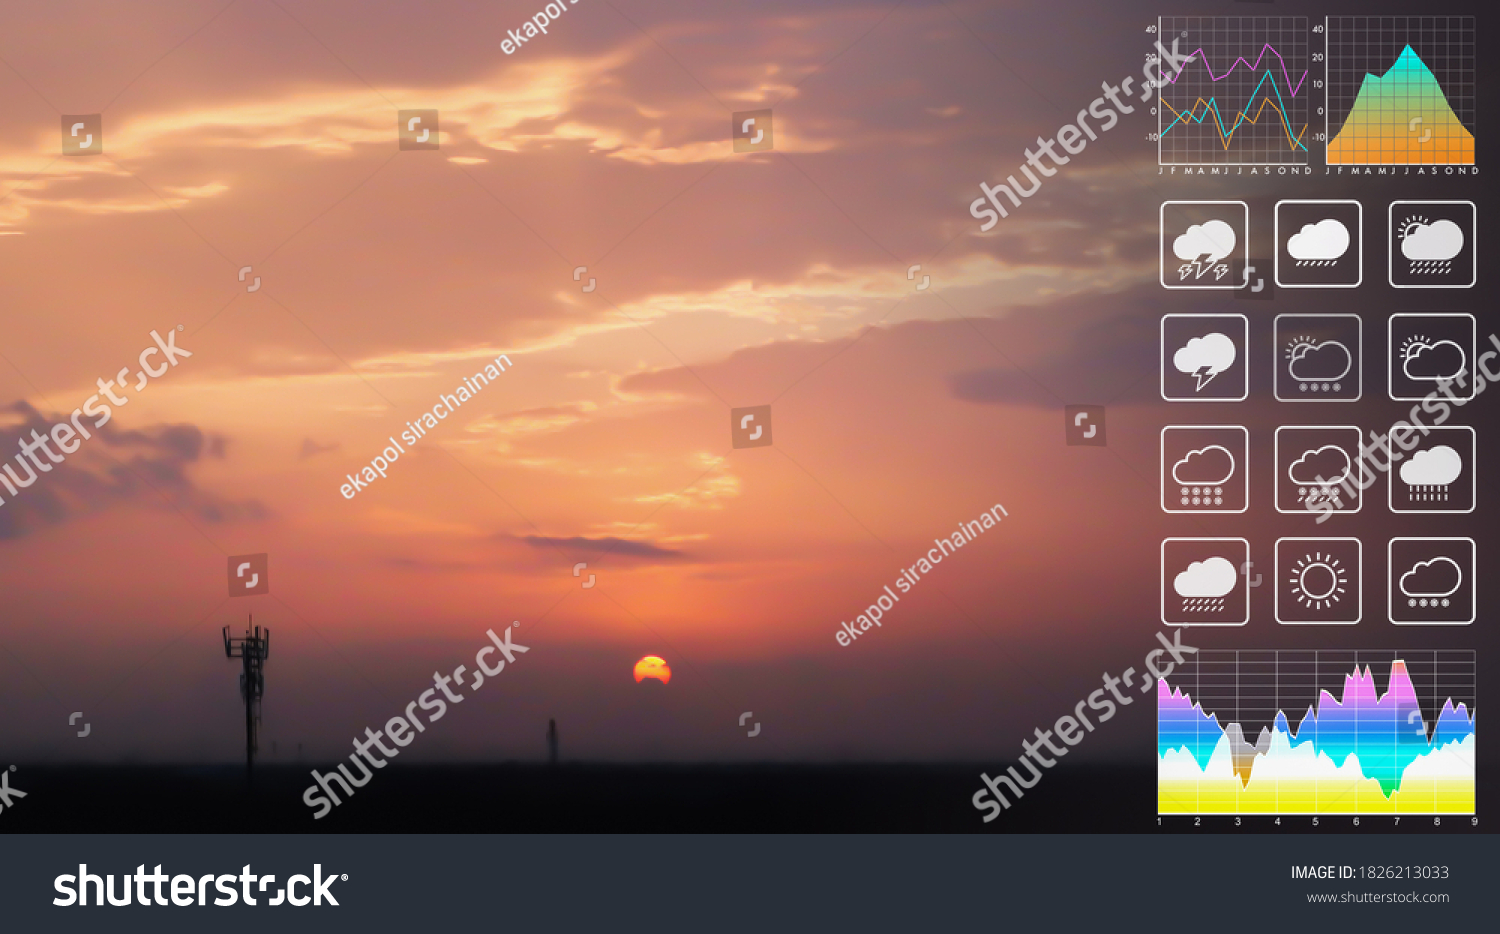 Weather forecast symbol data for meteorology presentation with graph and chart on dramatic atmosphere panorama view of colorful twilight tropical sky and  clouds aerial summer view background. #1826213033